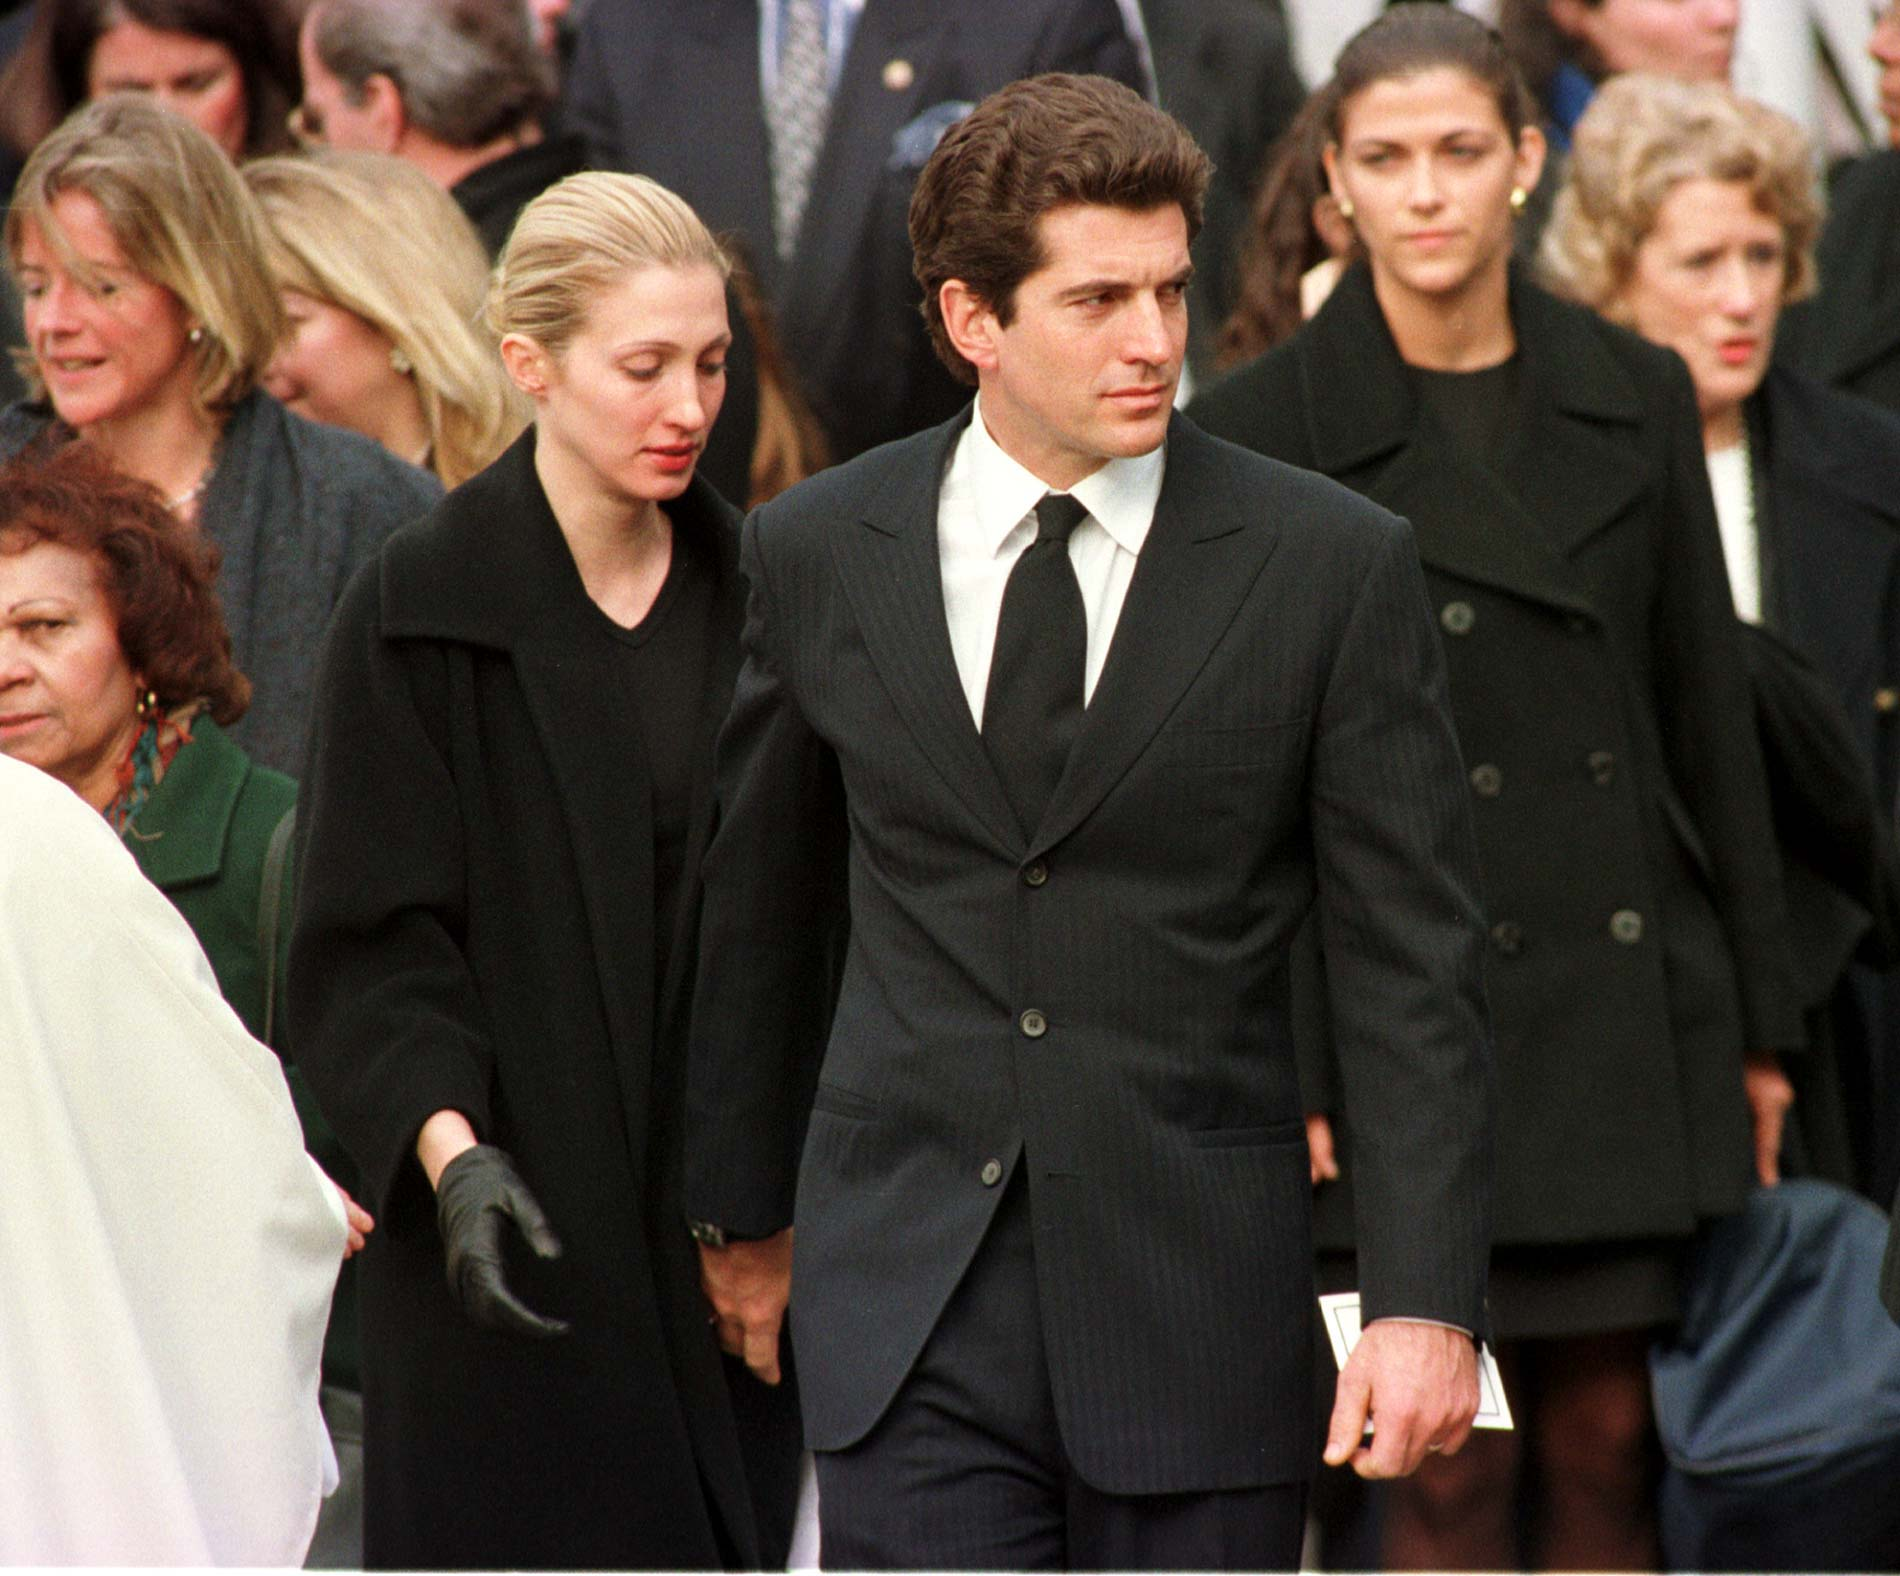 John F. Kennedy Jr. with his wife Carolyn after Michael Kennedy's funeral, Massachusetts, 1/3/98 | Photo: Getty Images